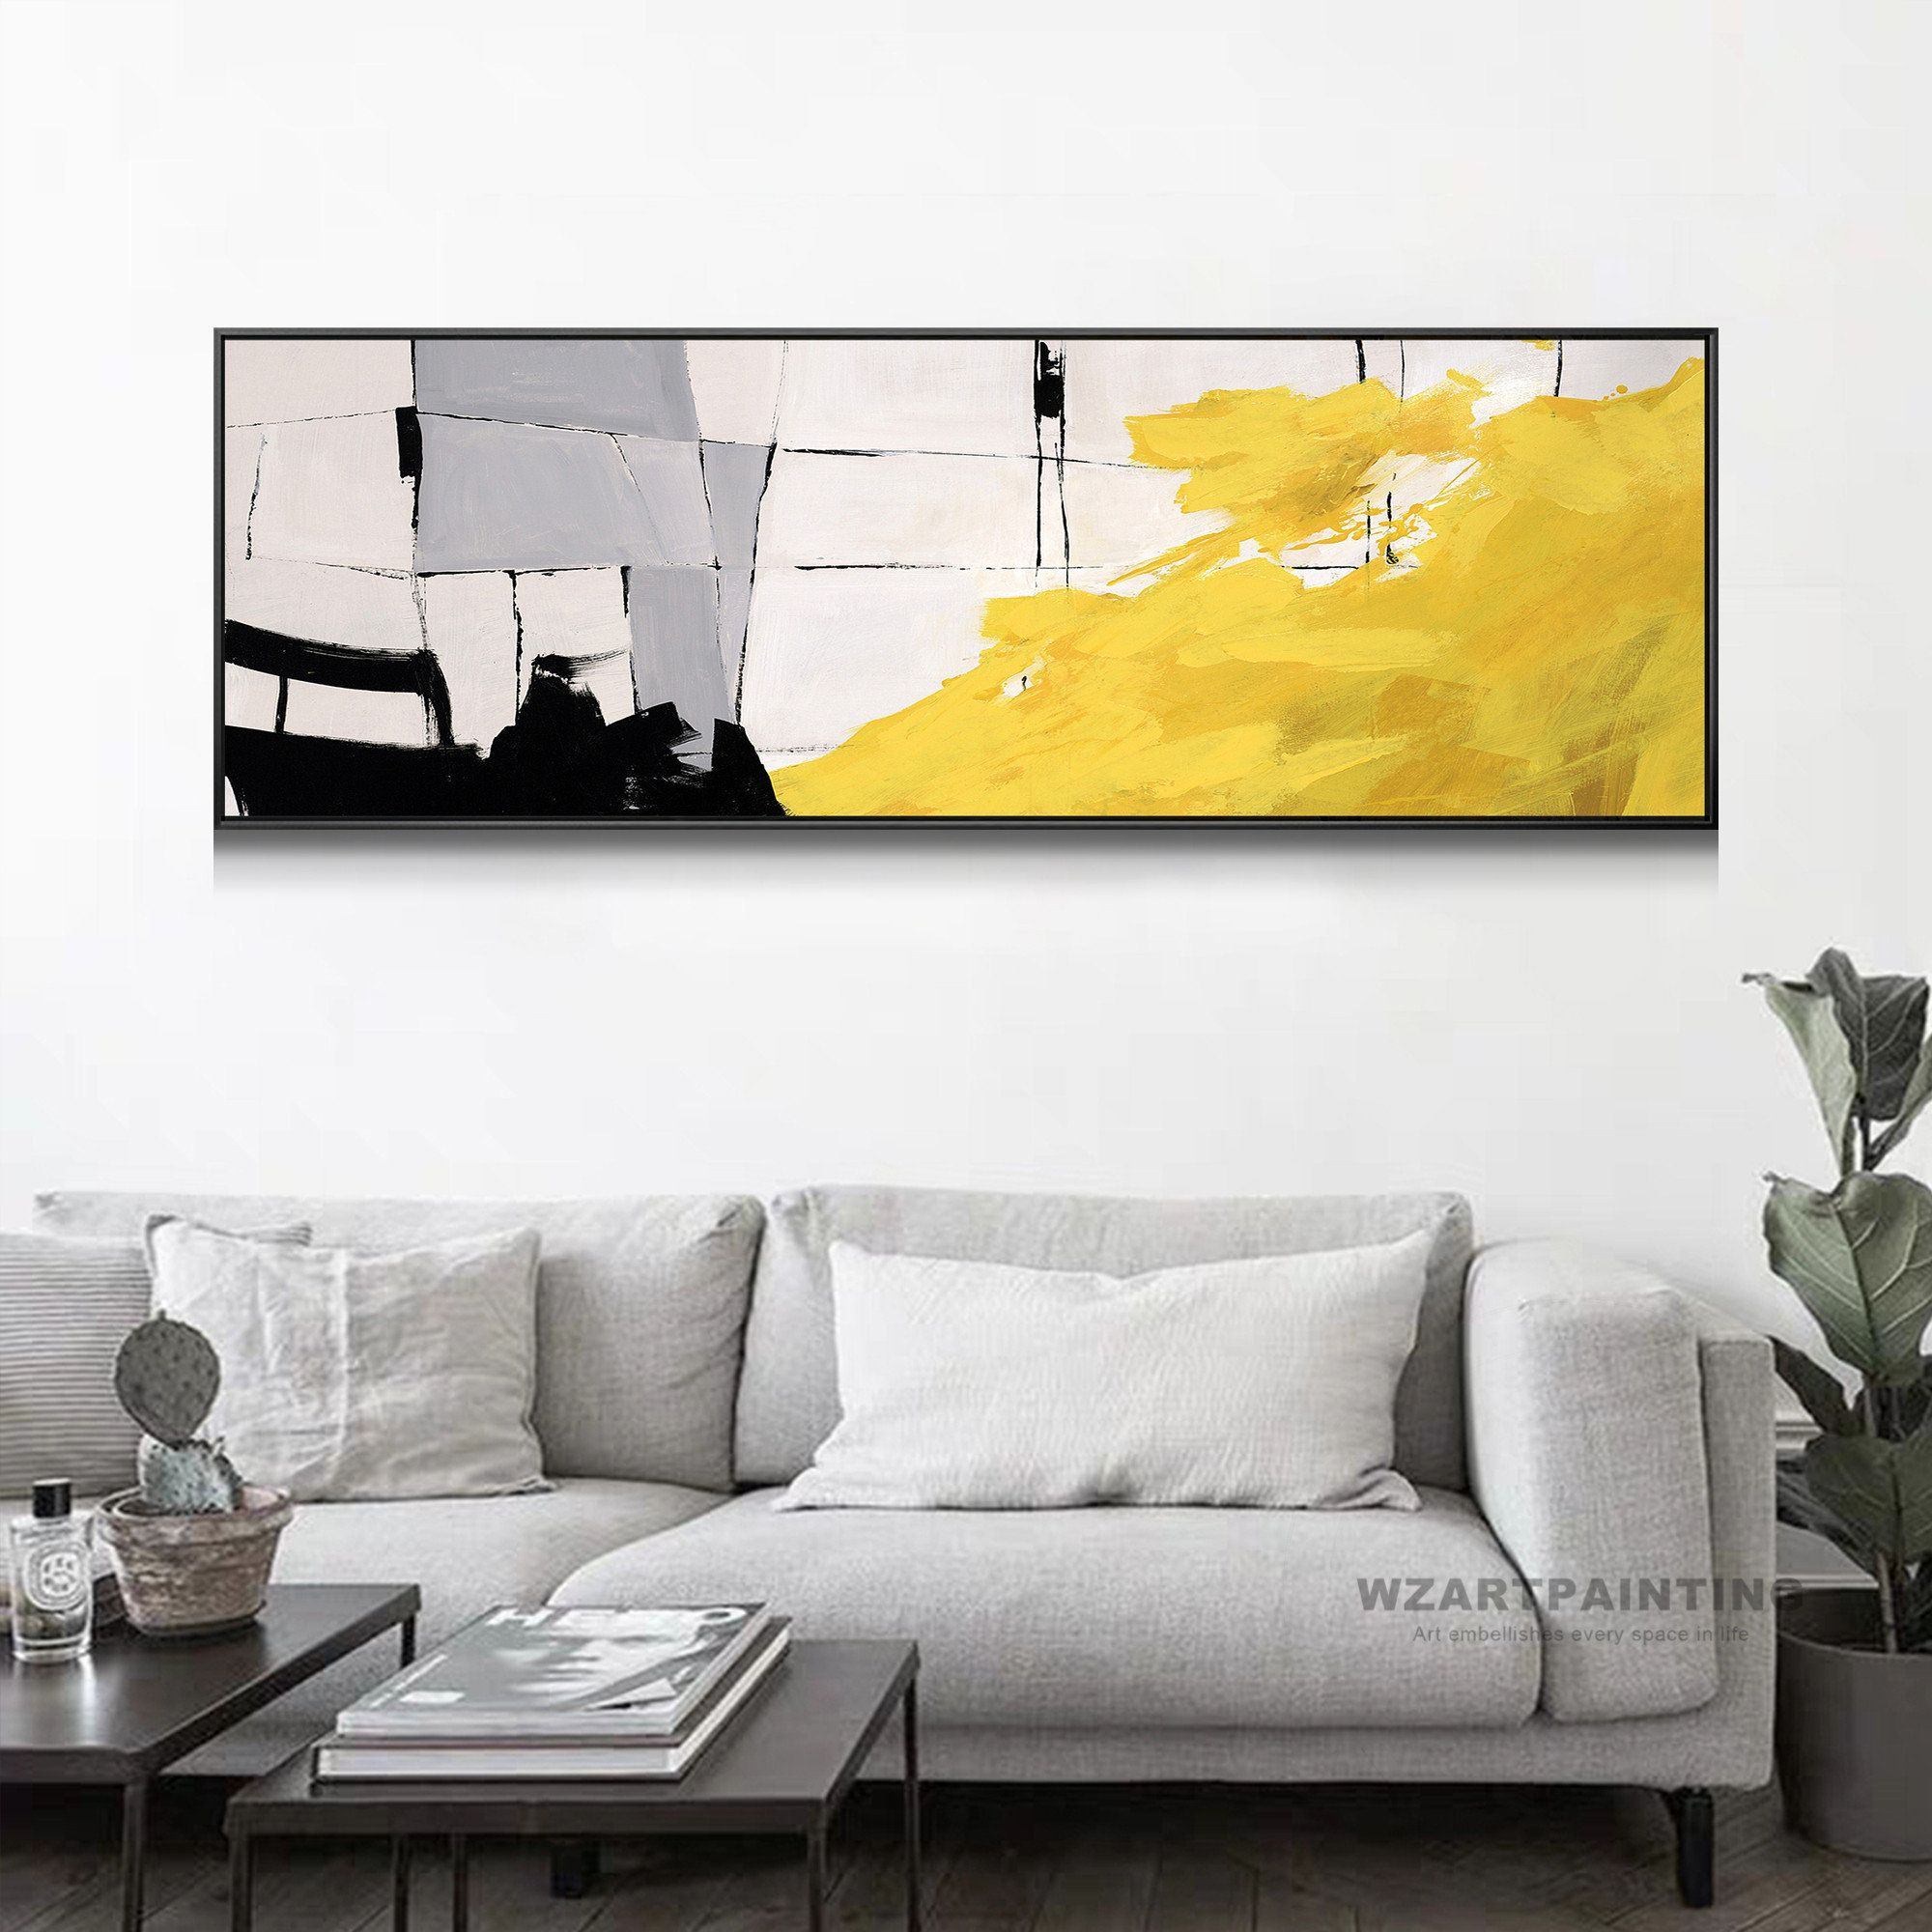 Abstract Grey Yellow Paintings Art Leinwand Print Wall Pictures Officce Home